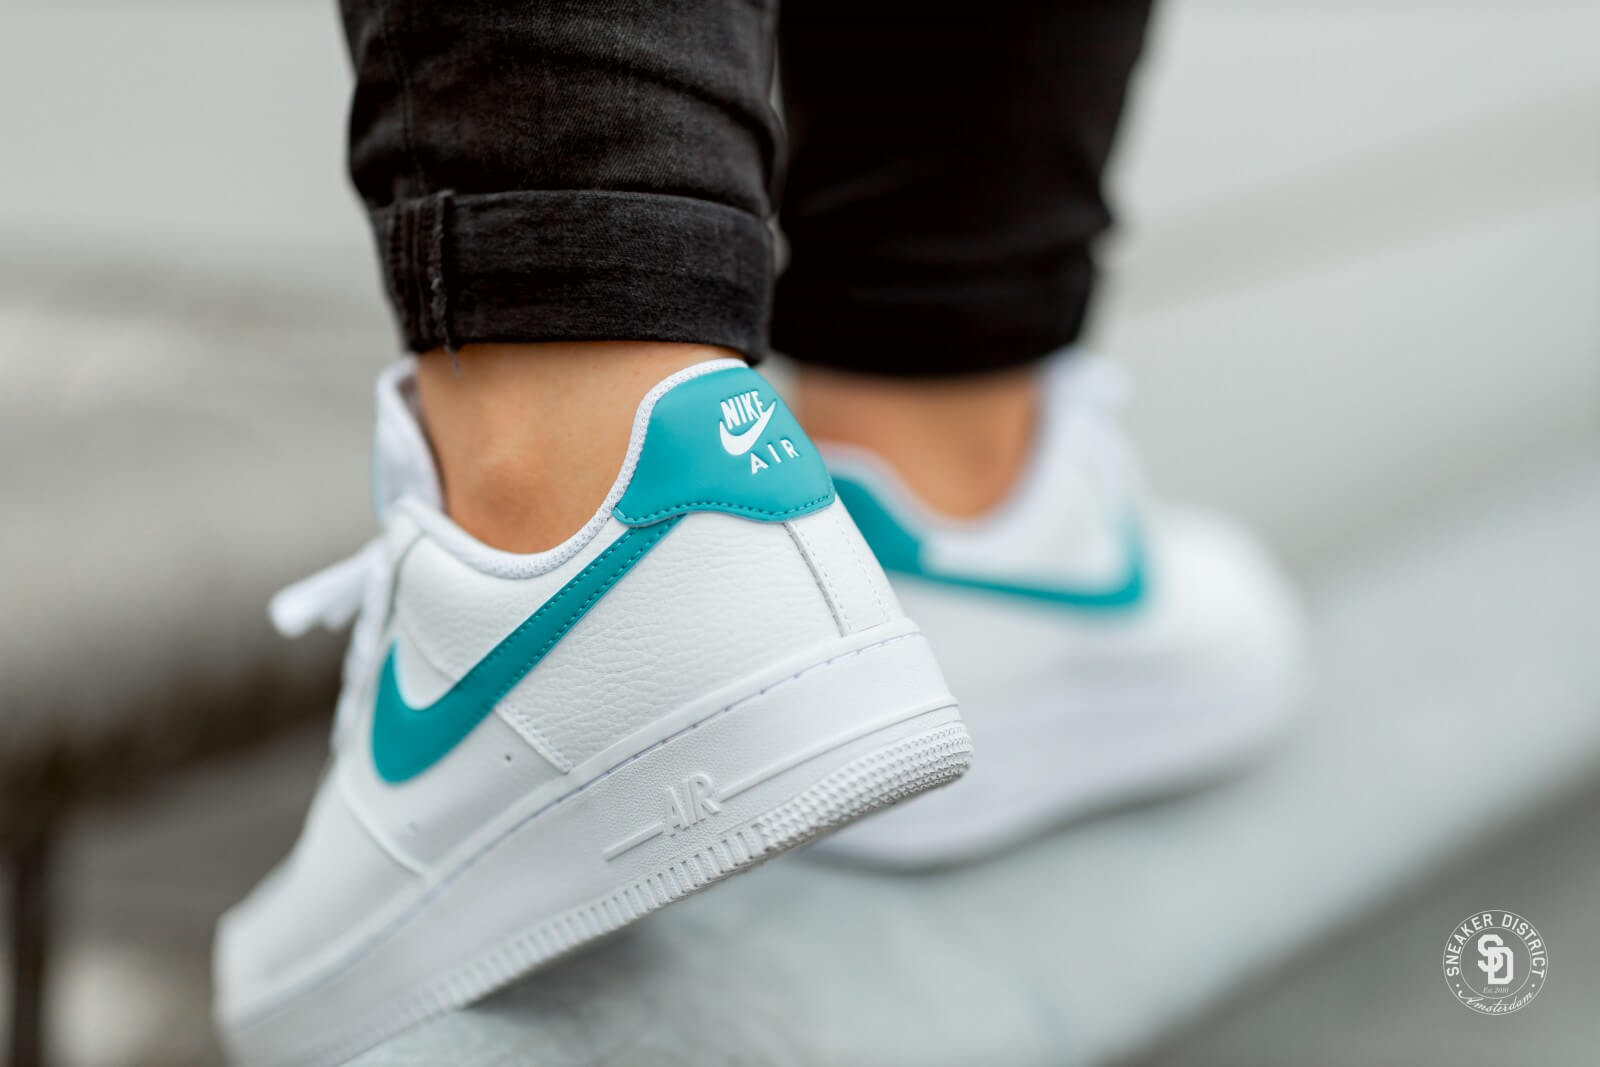 air force 1 femme bleu turquoise